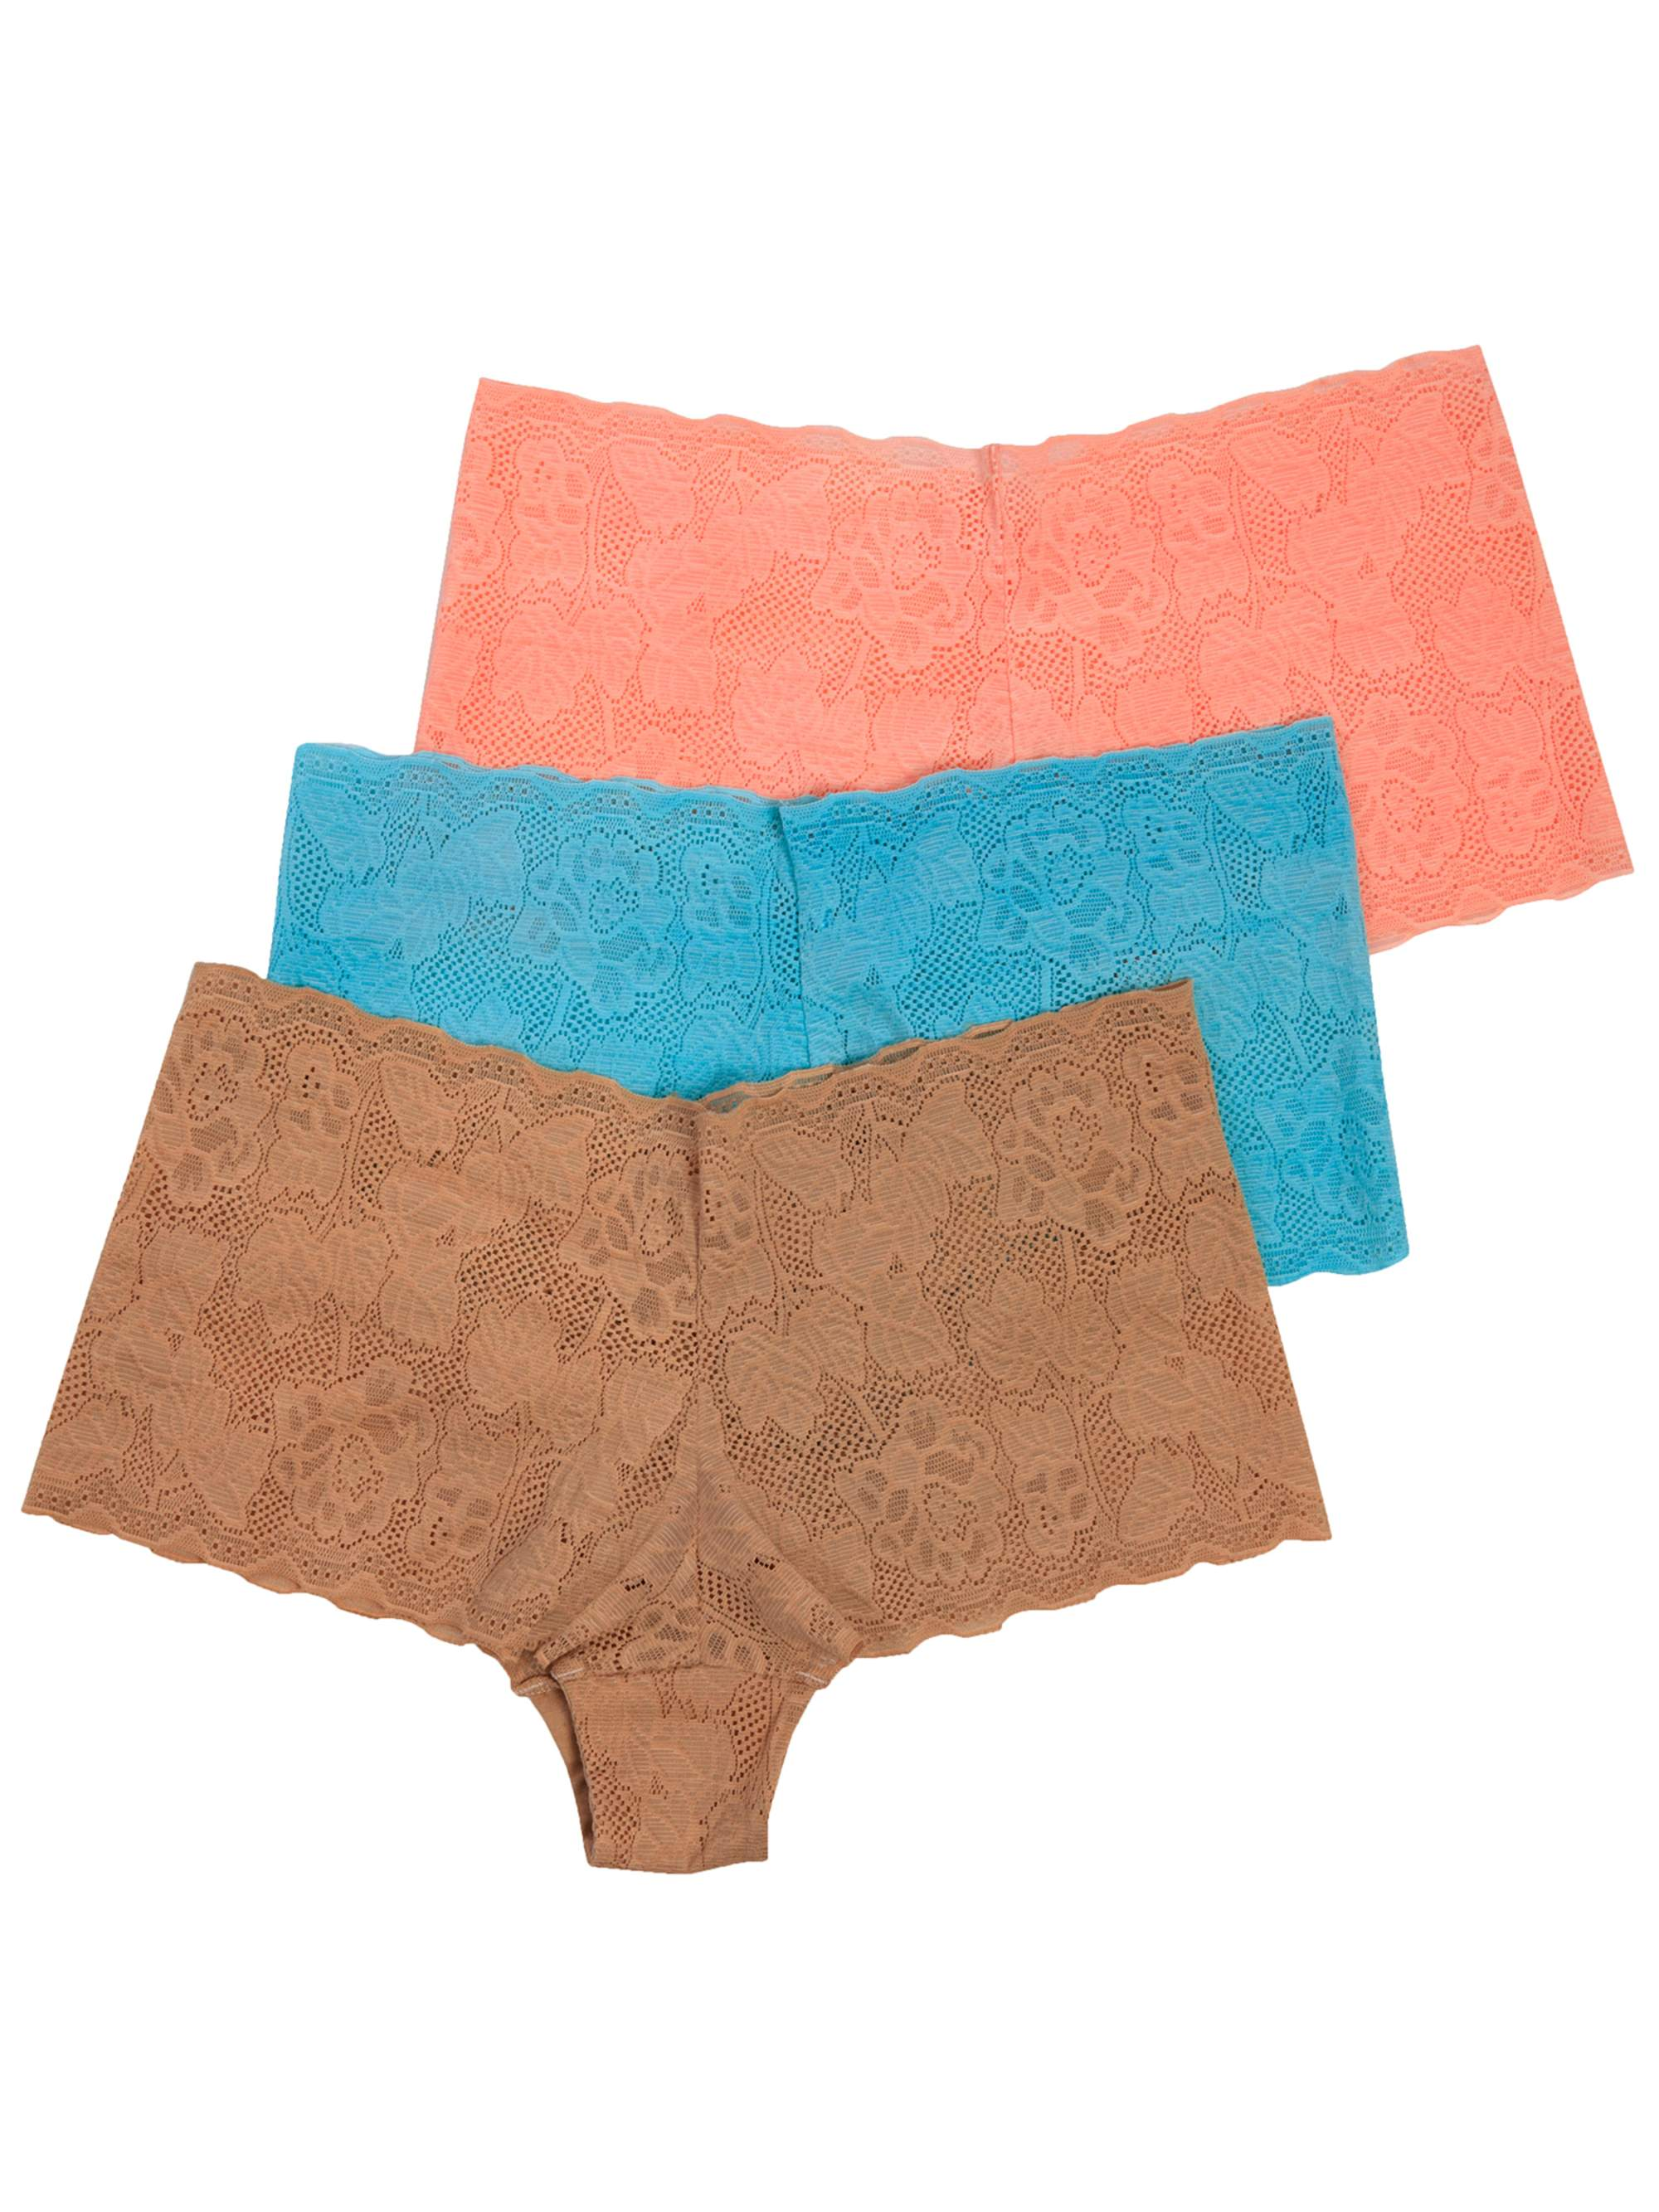 Women's Lace Boyshort Panties, 3-Pack